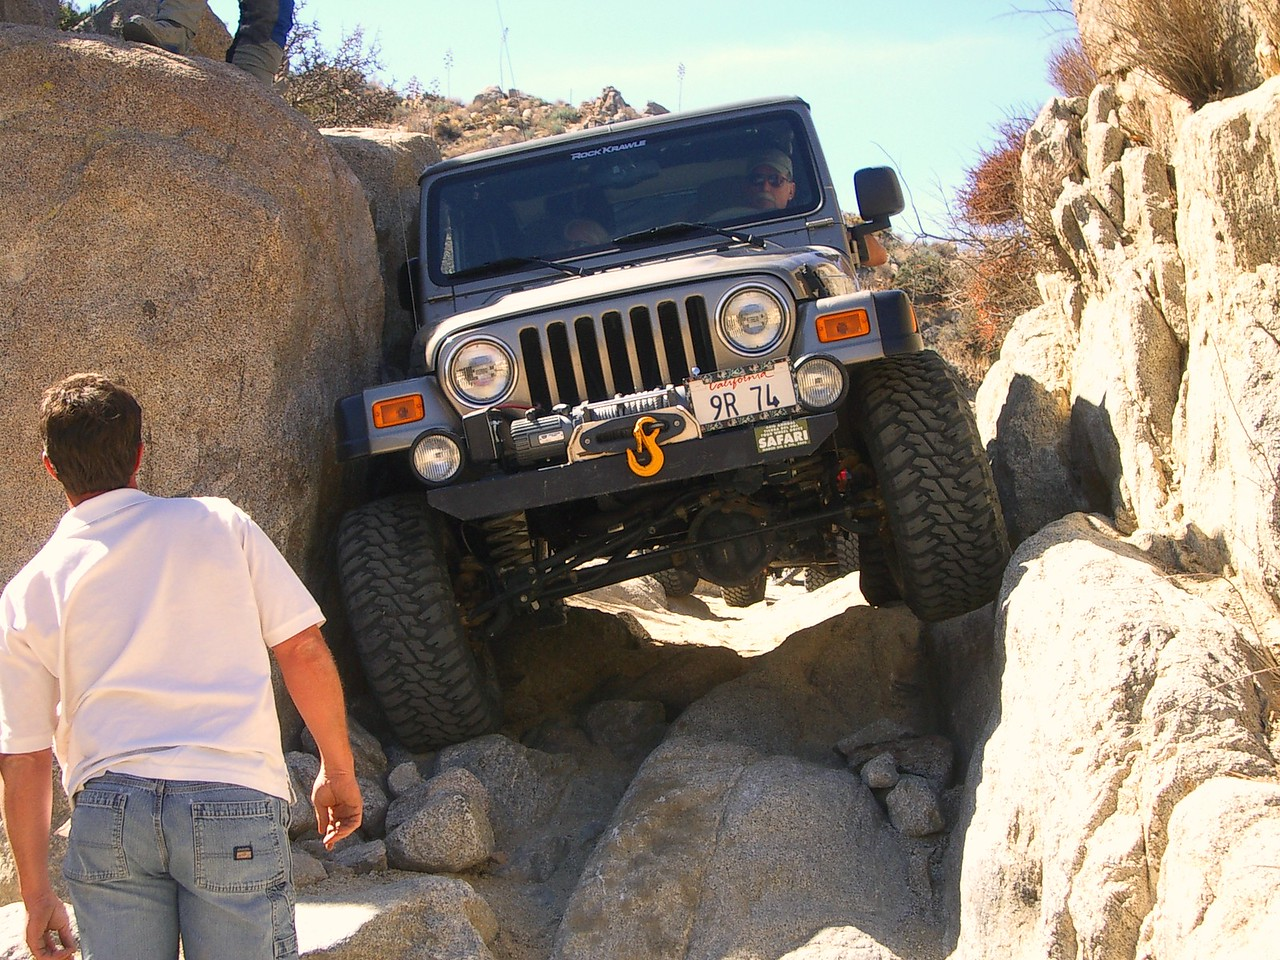 A bit of a squeeze for the jeeps.